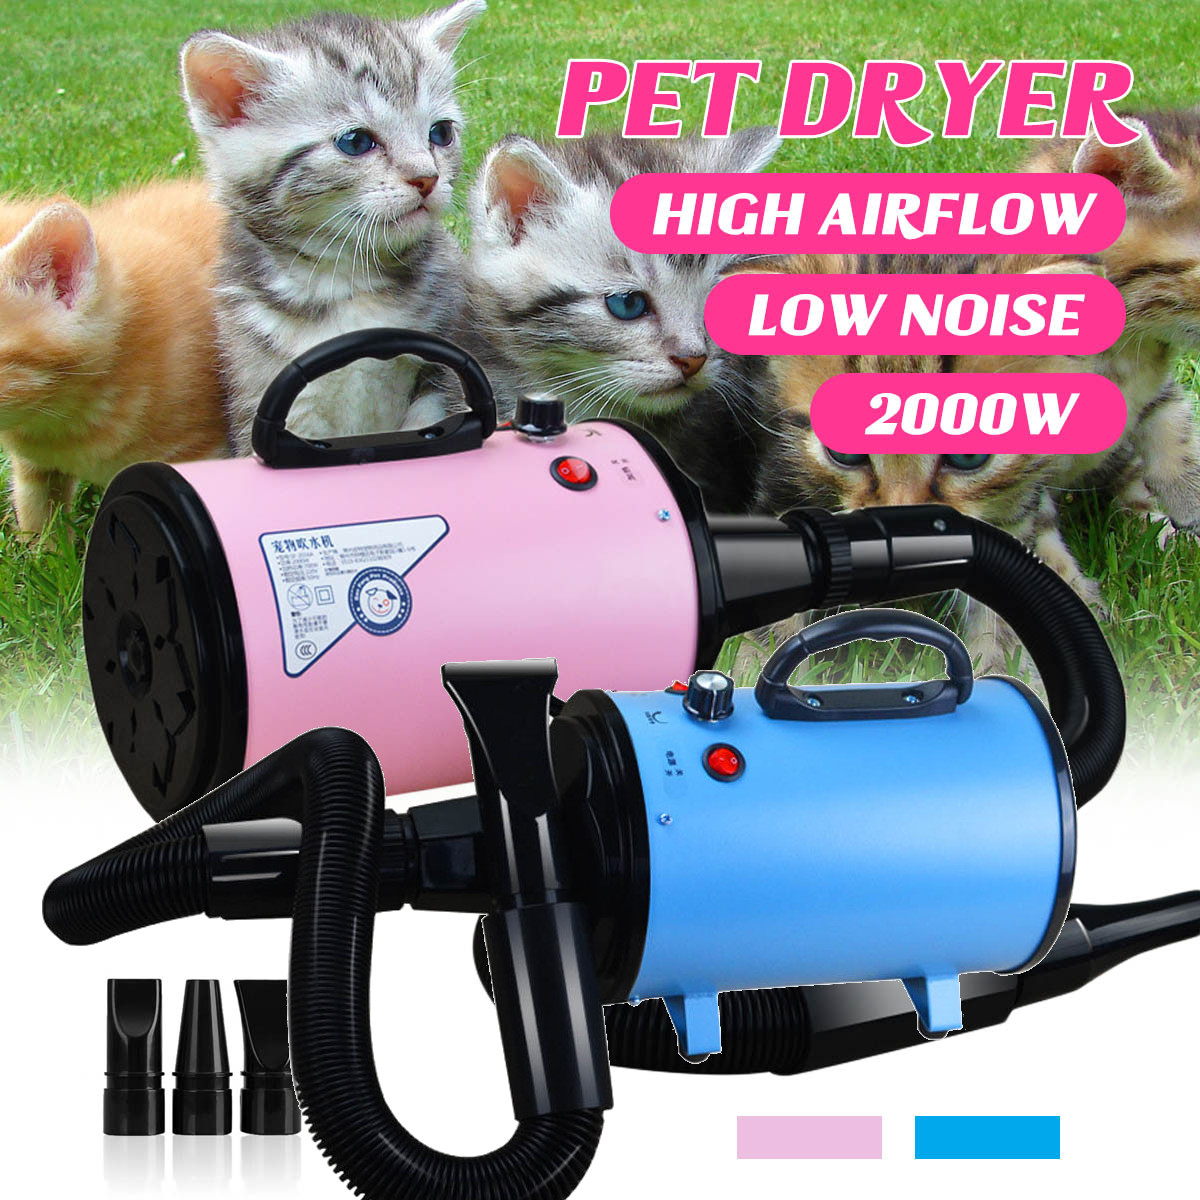 2000W 220V~240V Dryer Blower Variable Speed Portable Dog Cat Pet Blow Hair Low Noise Hairdryer Grooming Dryer Cheap Pet Hair Dry